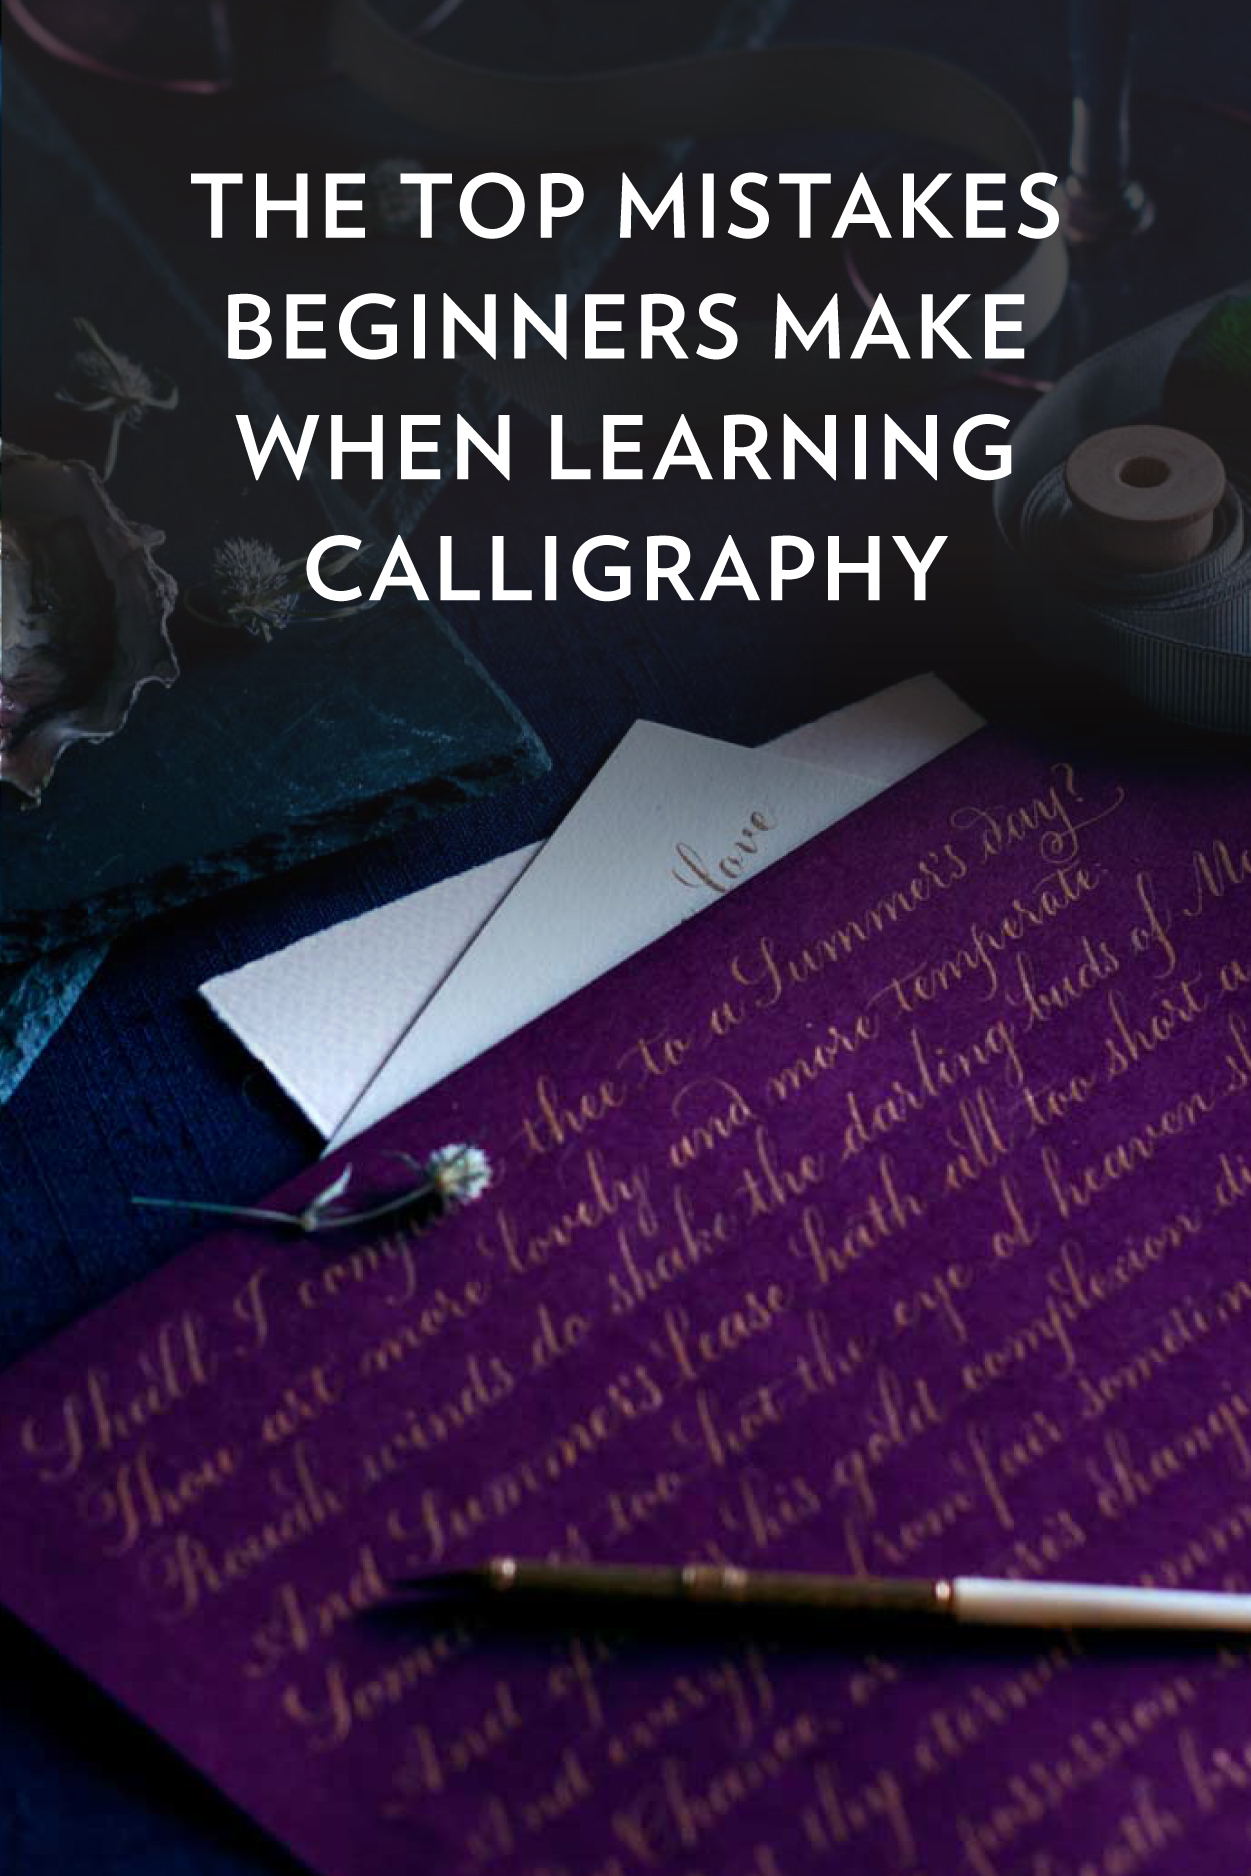 Top Mistakes beginners make when learning calligraphy // www.chavelli.com